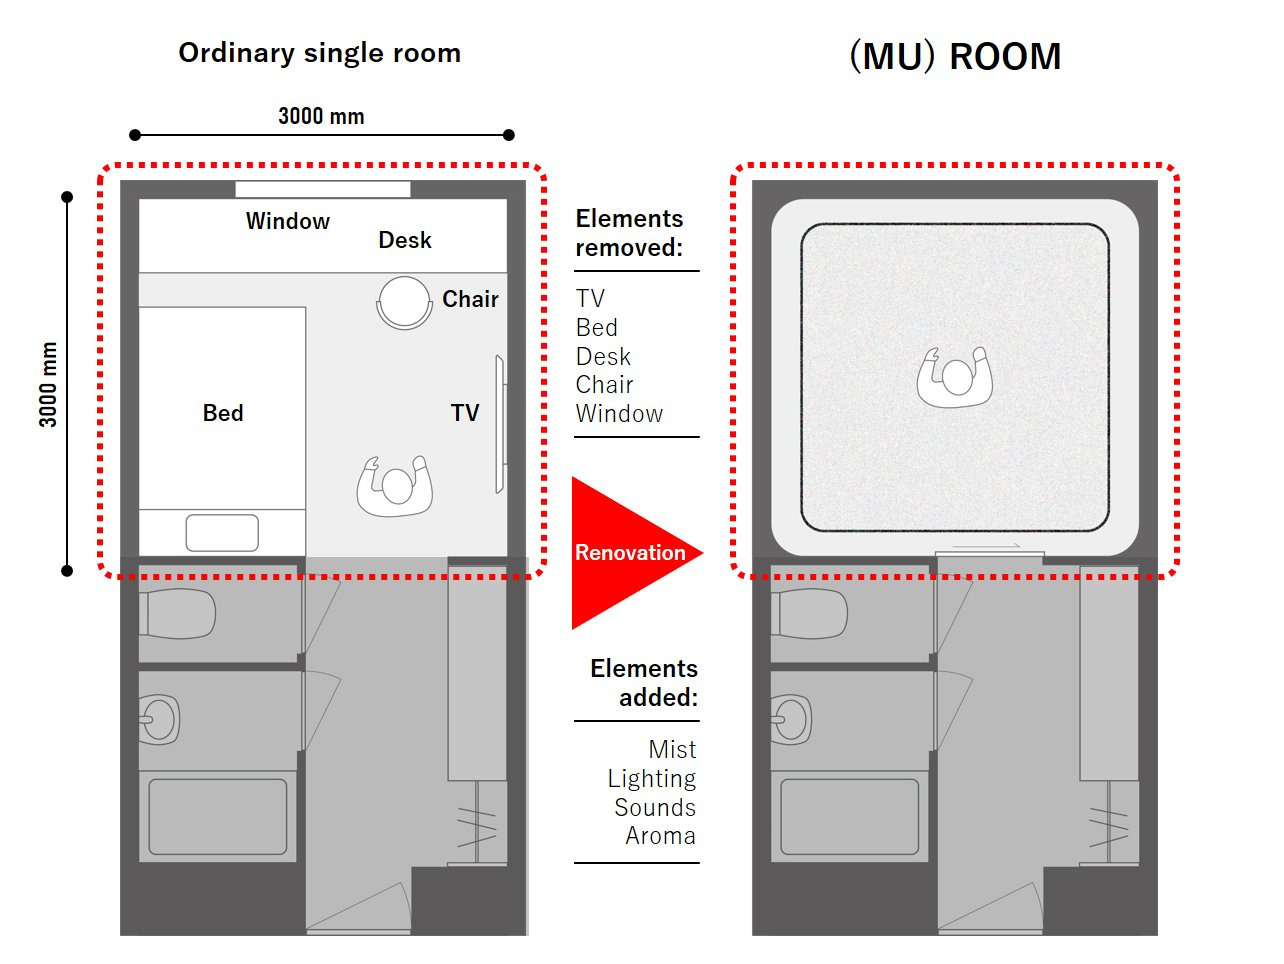 An ordinary single room and the (MU) ROOM layout comparison.